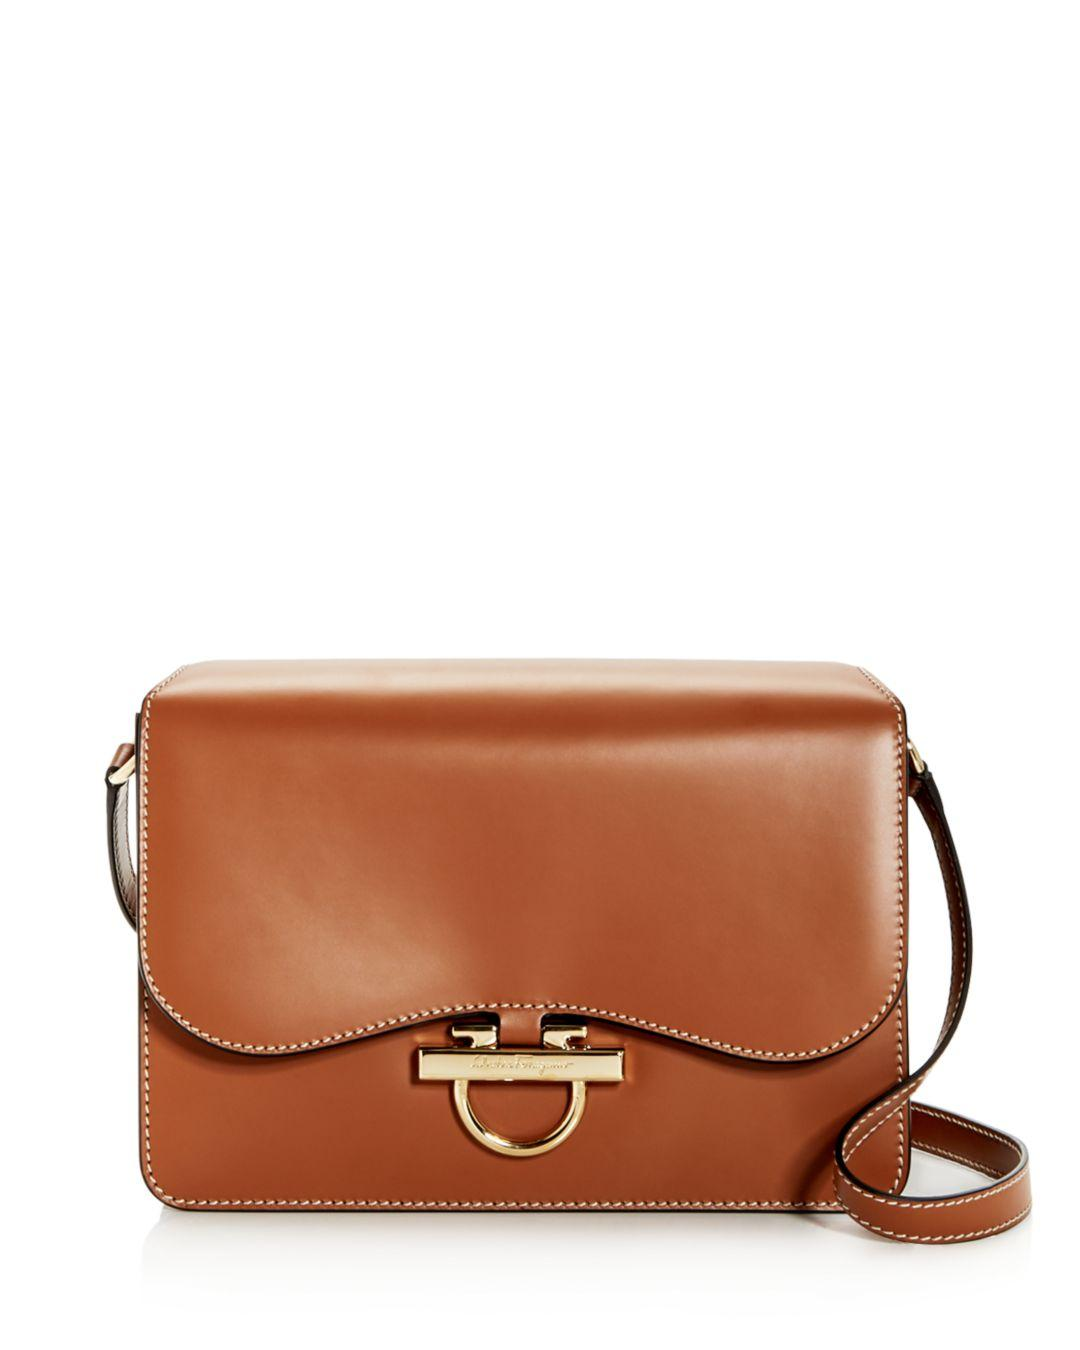 505a12879a Ferragamo Joanne Classic Leather Shoulder Bag in Brown - Lyst